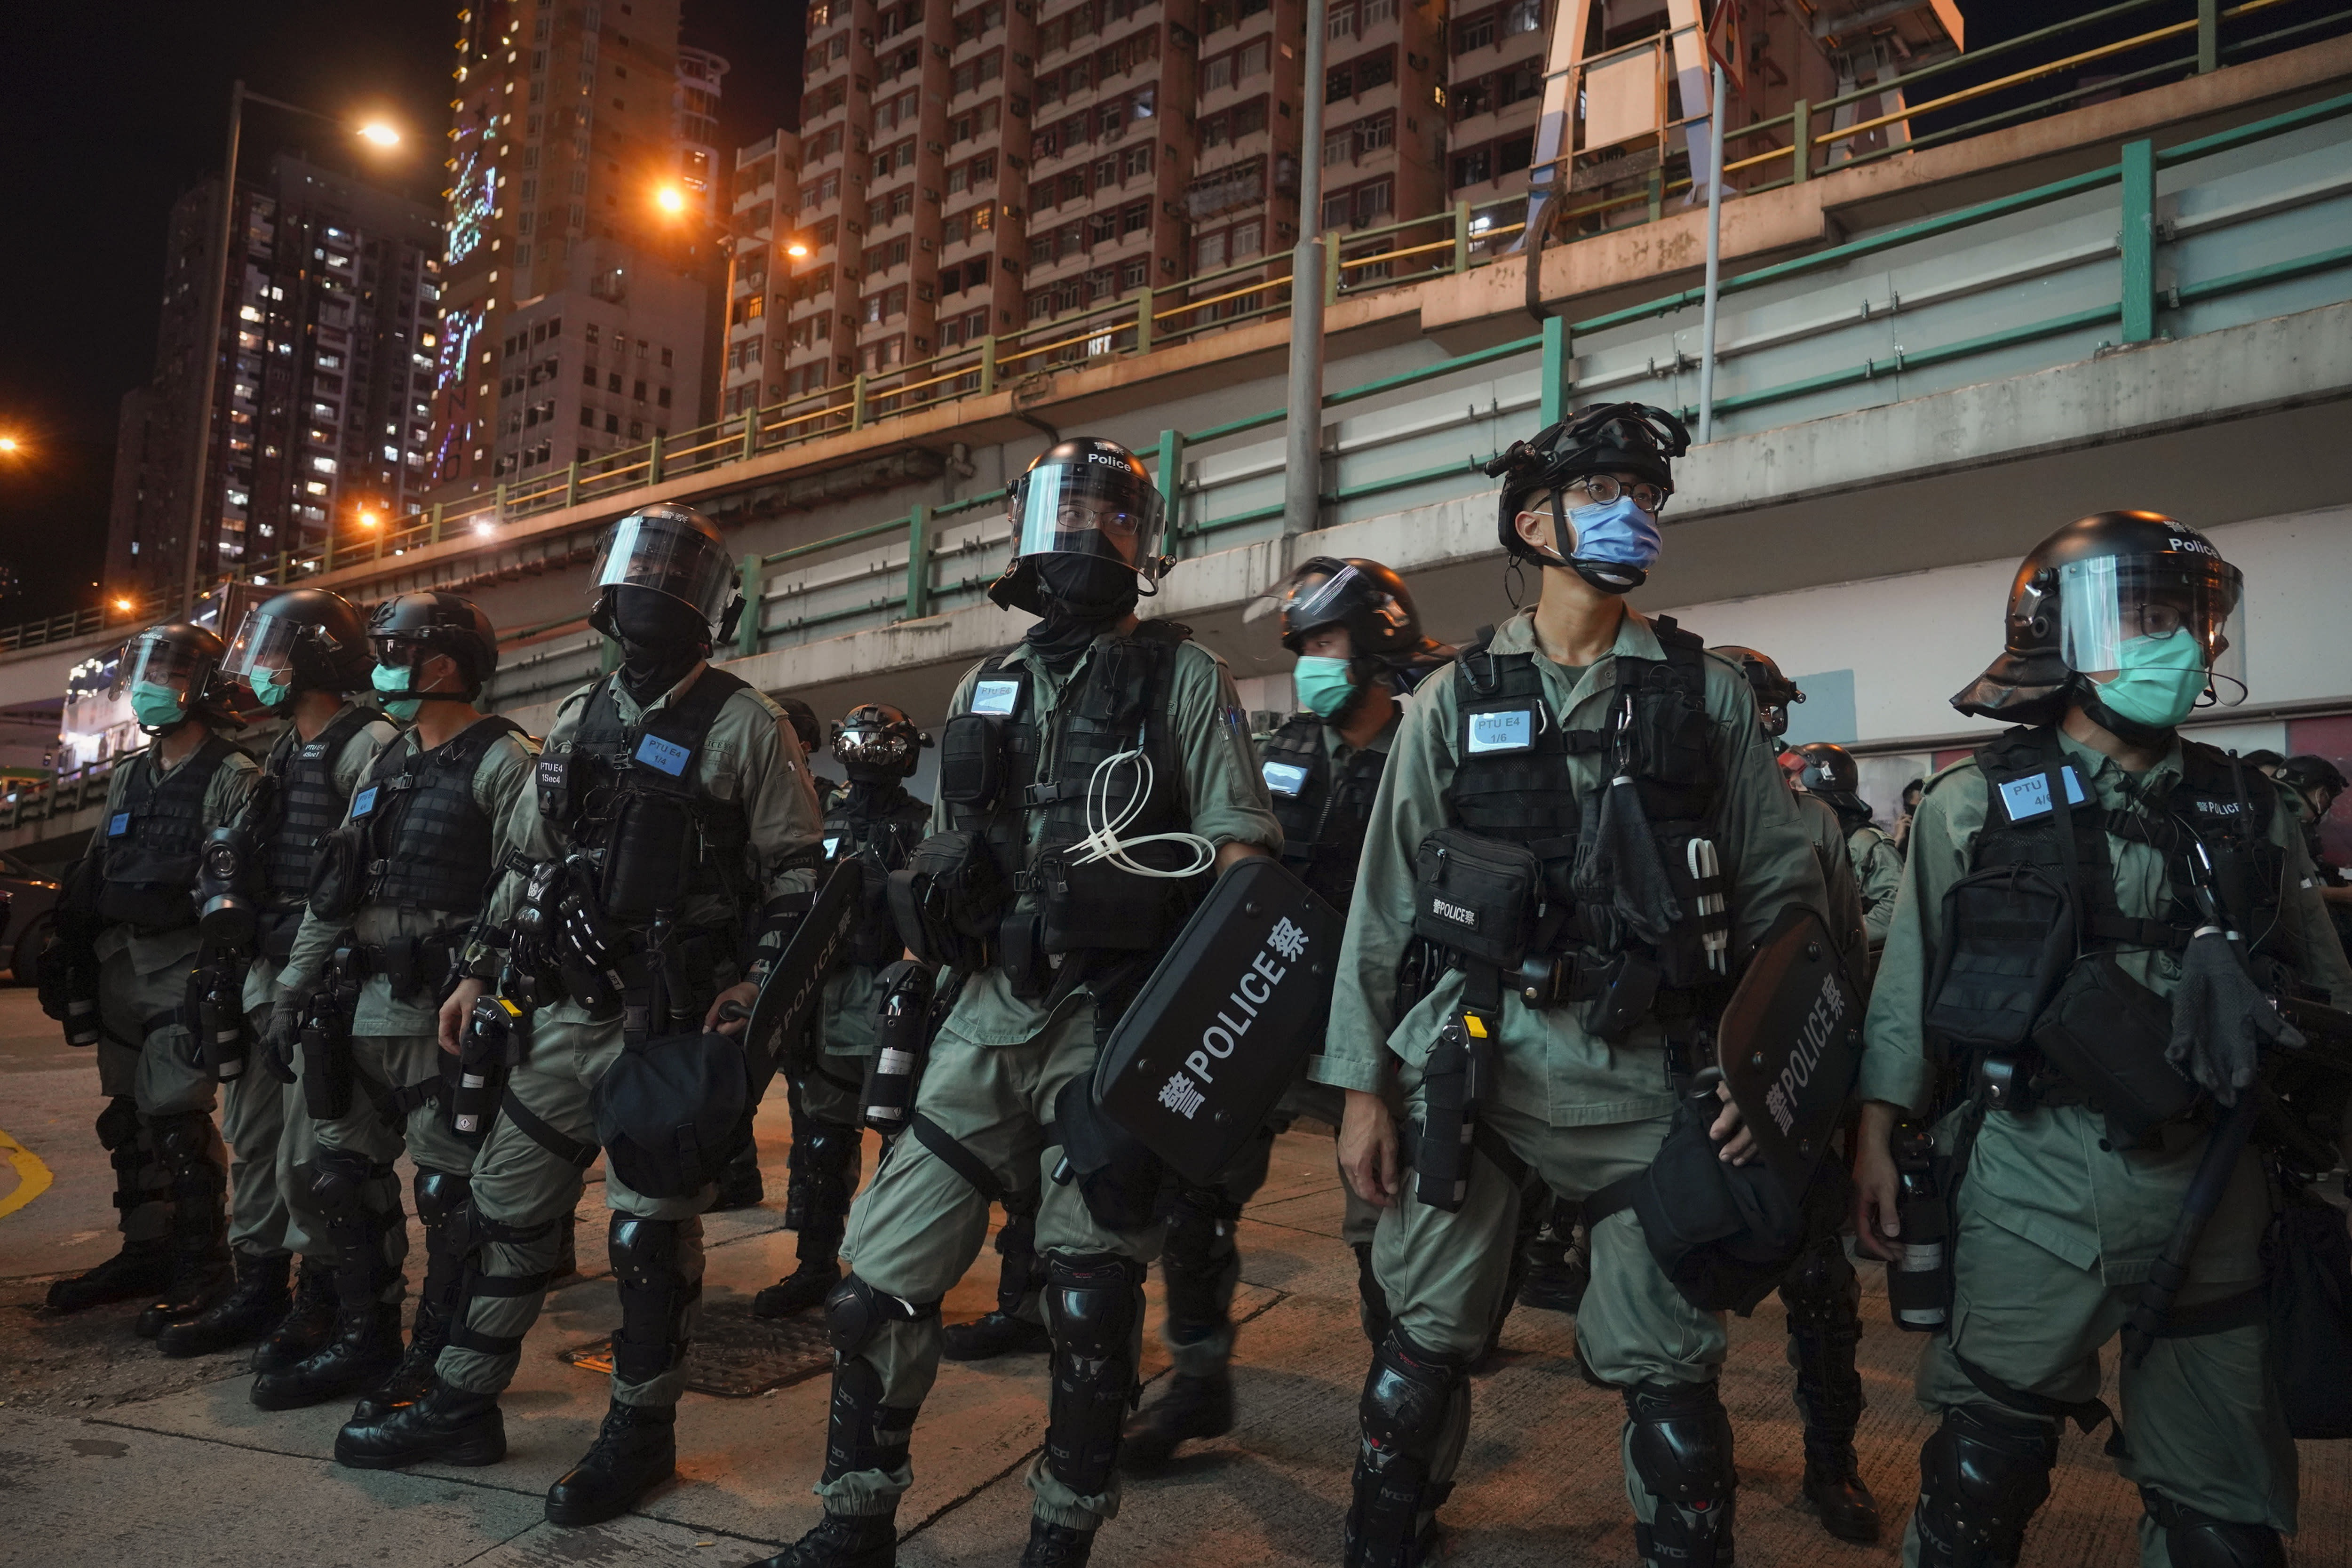 Riot police stand guard after pushing back protesters demonstrating against the new security law during the anniversary of the Hong Kong handover from Britain, Wednesday, July. 1, 2020, in Hong Kong. Hong Kong police have made their first arrests under a new national security law imposed by mainland China. The law, which took effect Tuesday night, makes activities deemed subversive or secessionist punishable by up to life in prison. (AP Photo/Vincent Yu)